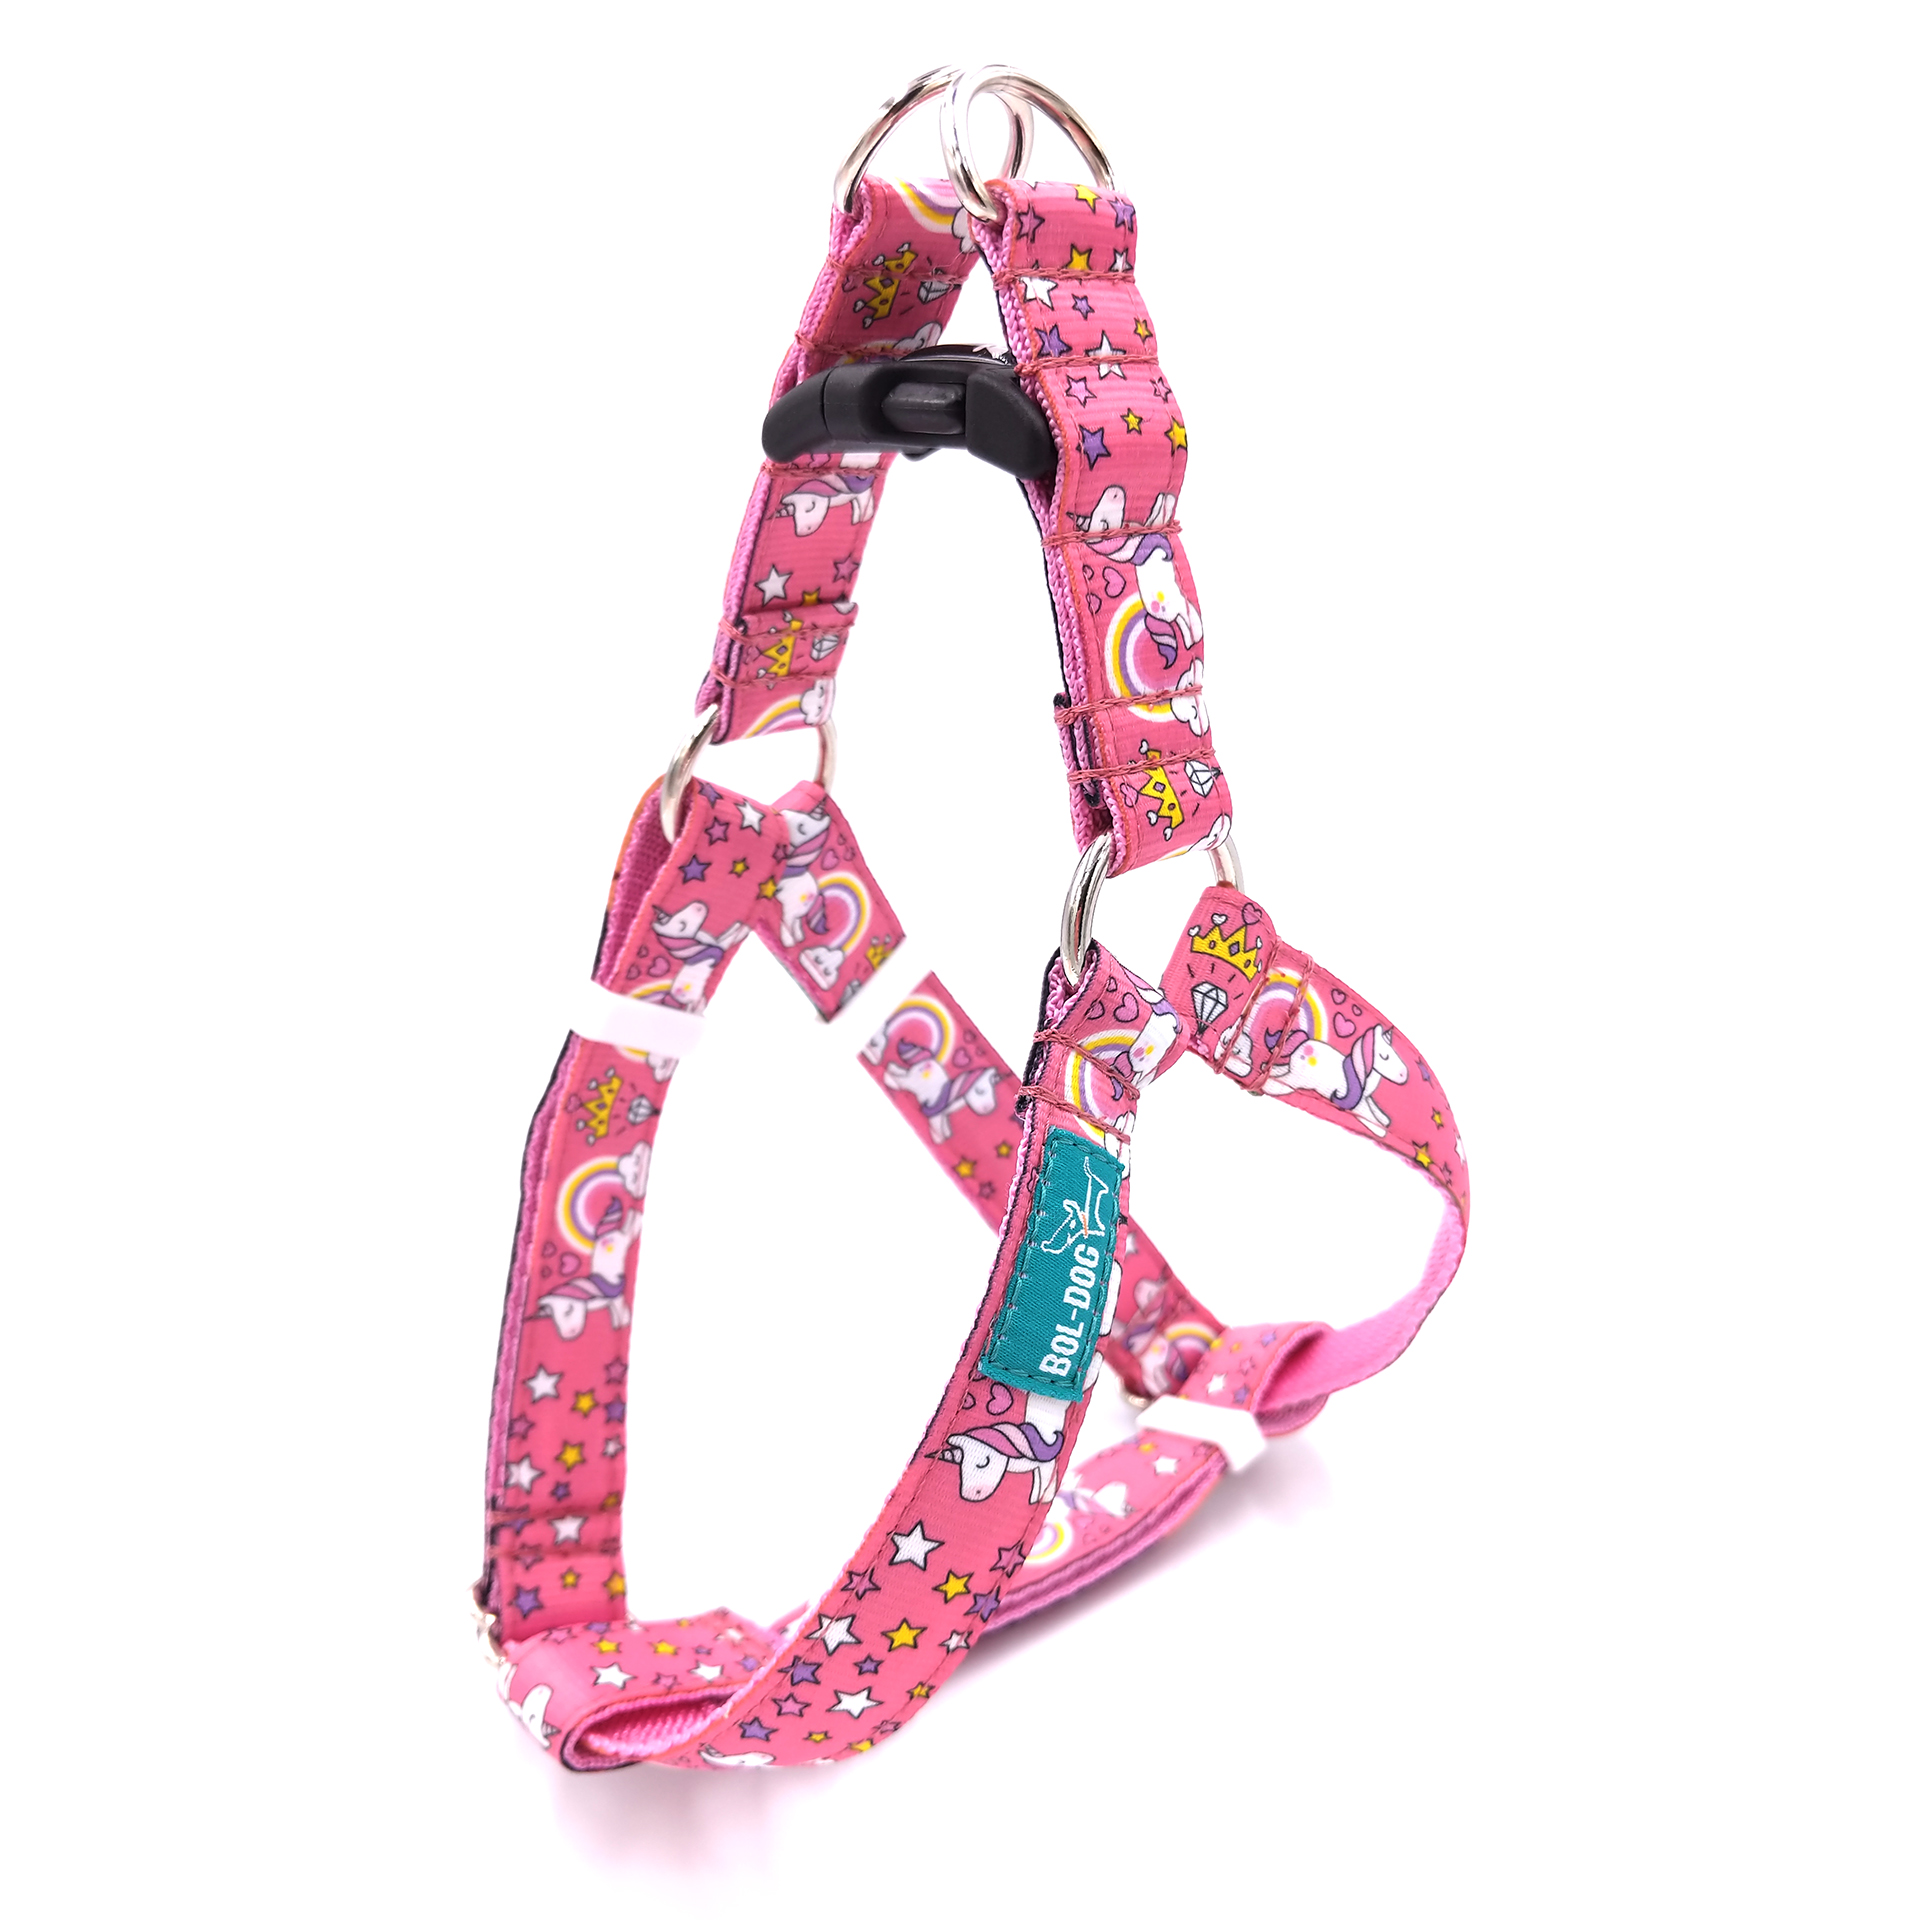 Unicorn dog harness